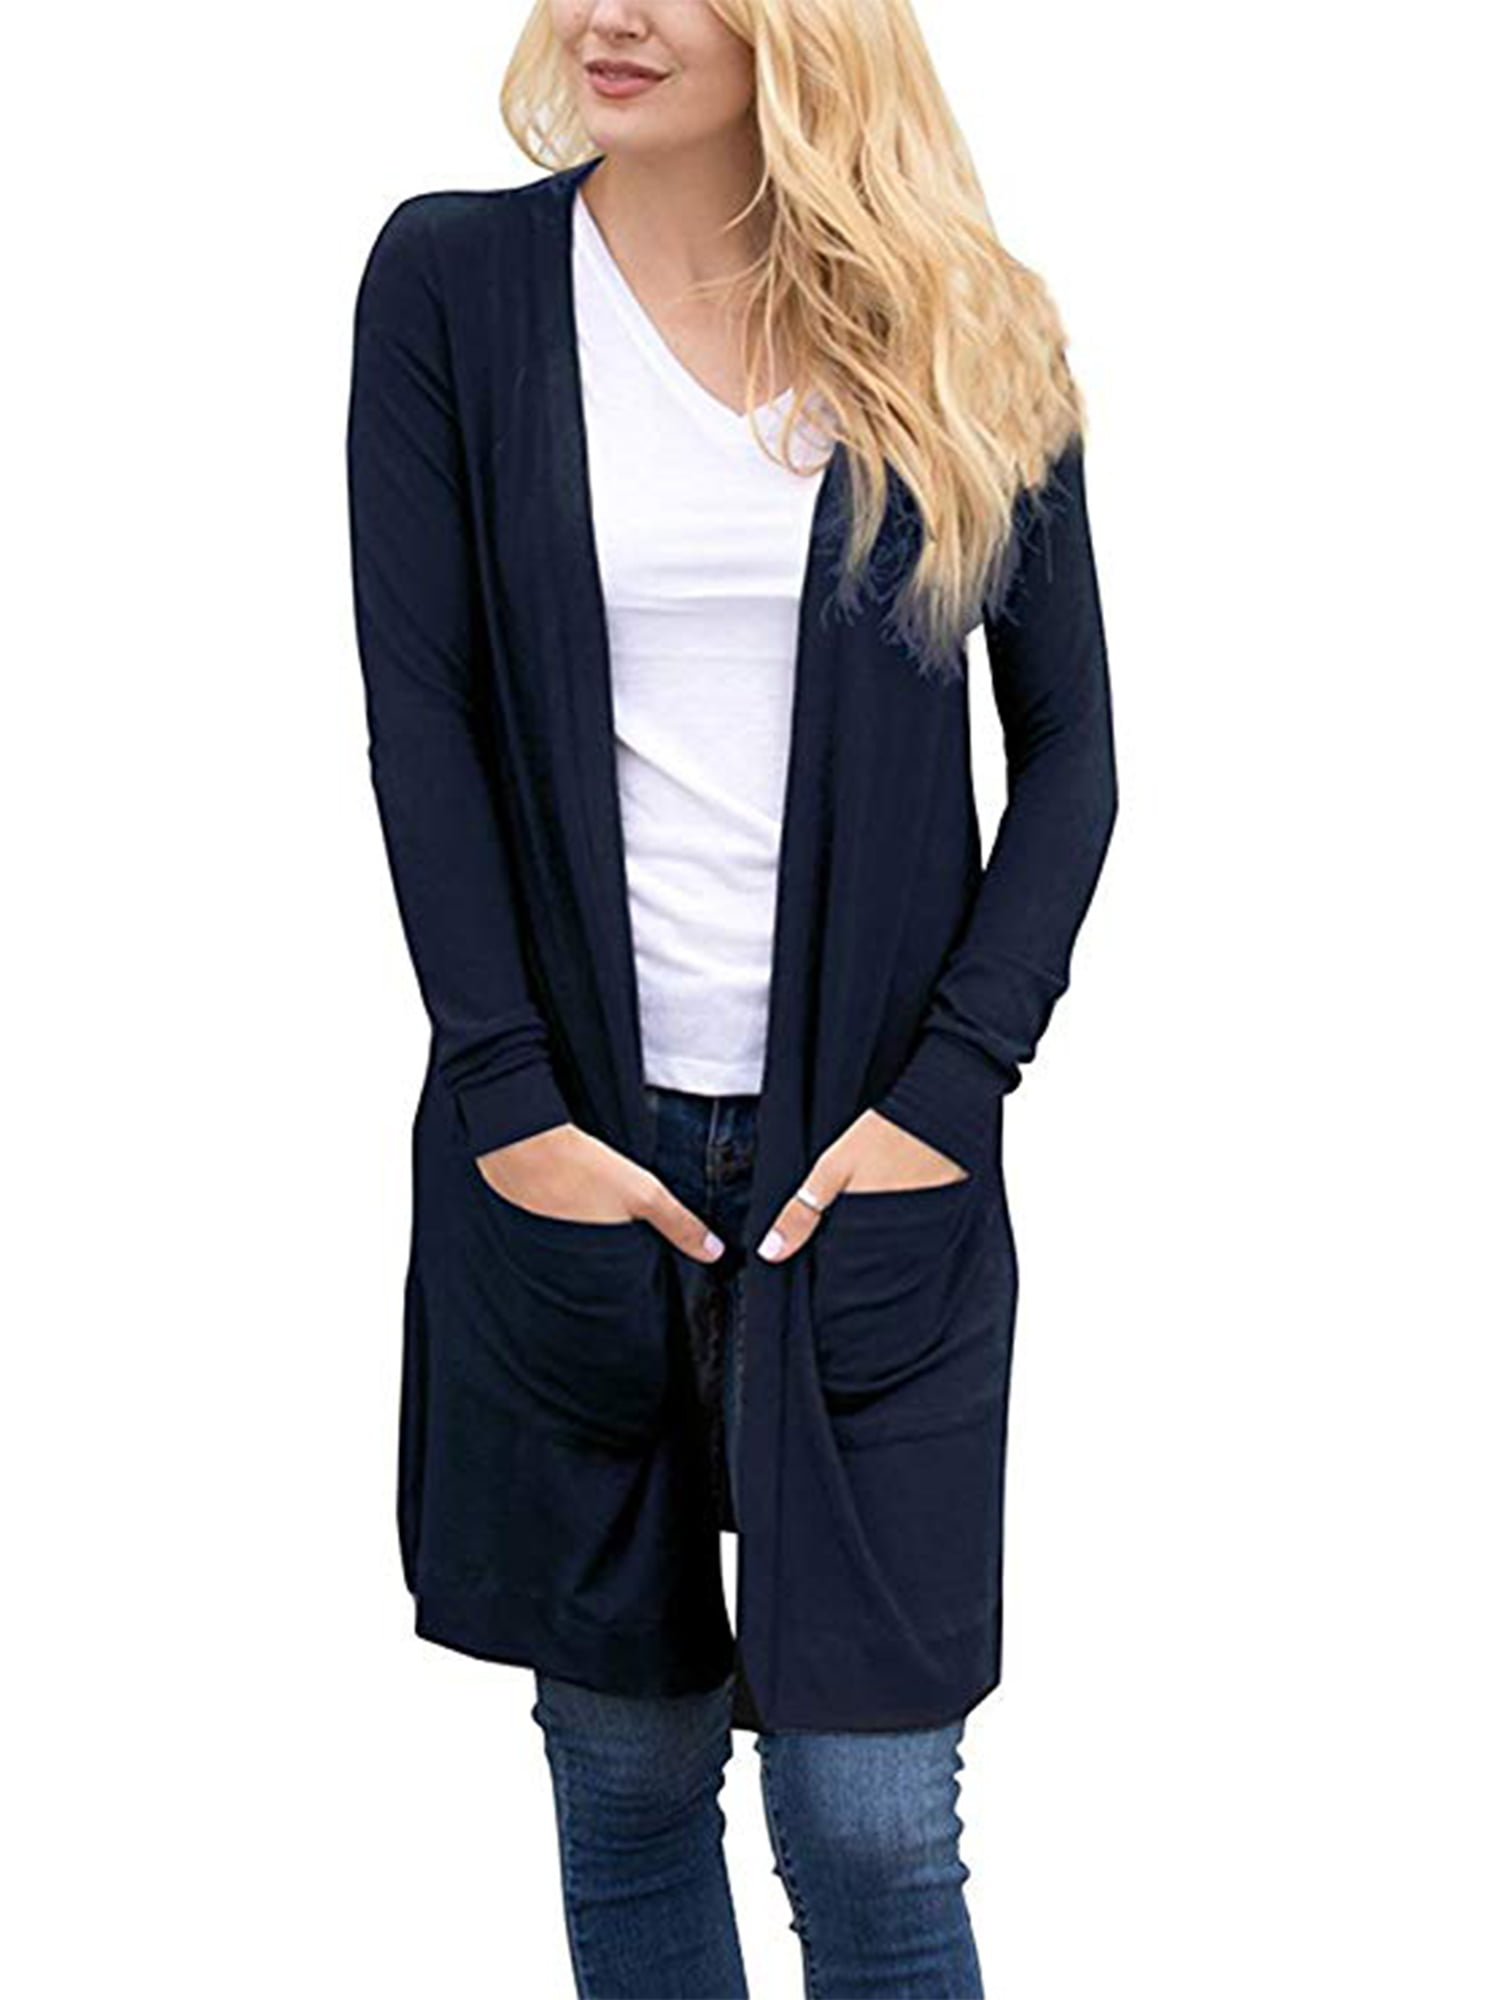 New Ladies Open Front Long Sleeve Knitted With 2 Pocket Cardigan Jumper Coat Top